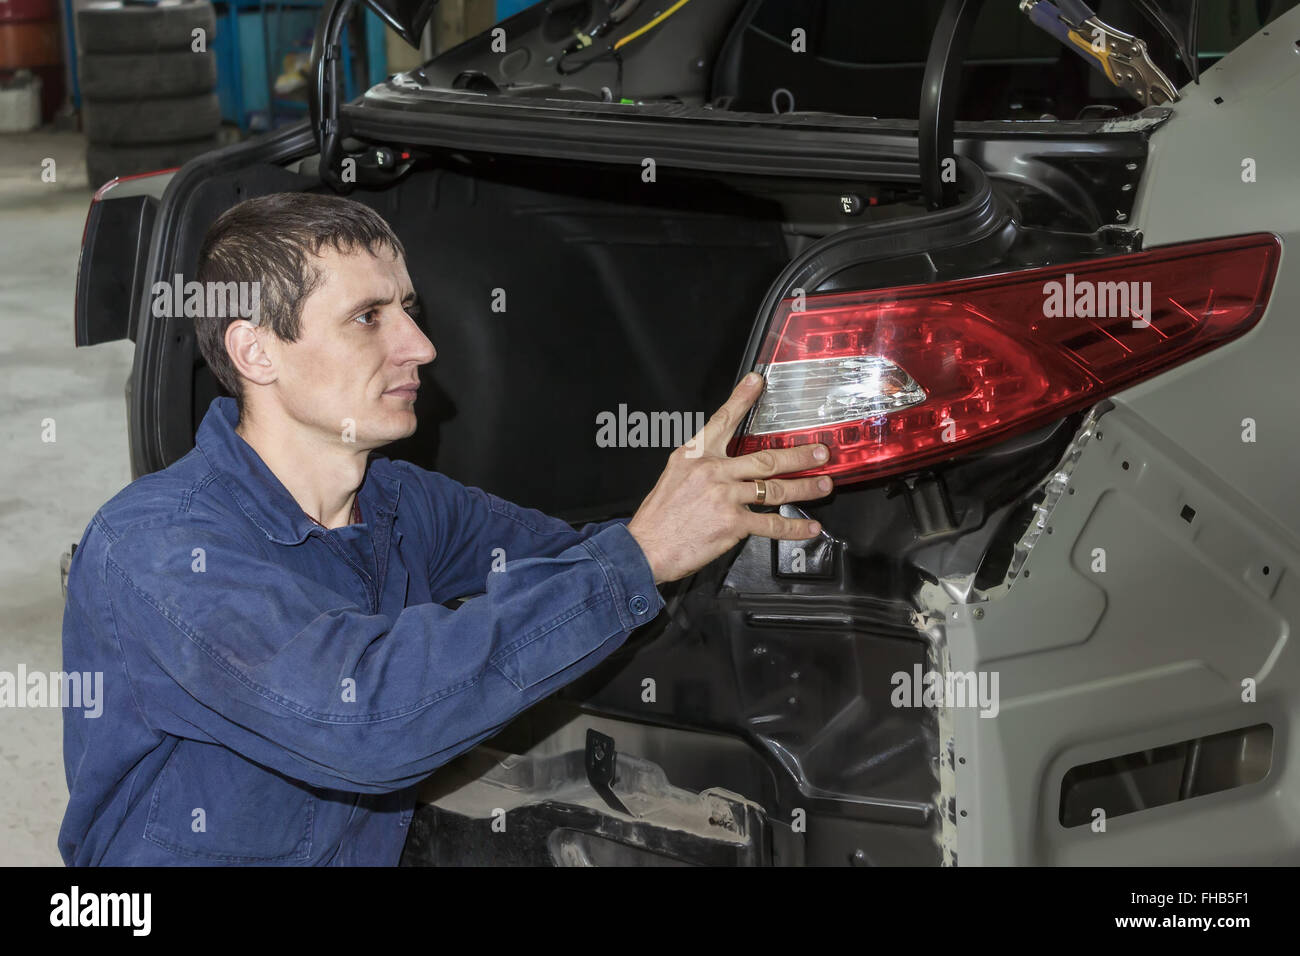 Young mechanic installs tail light on the vehicle. Stock Photo